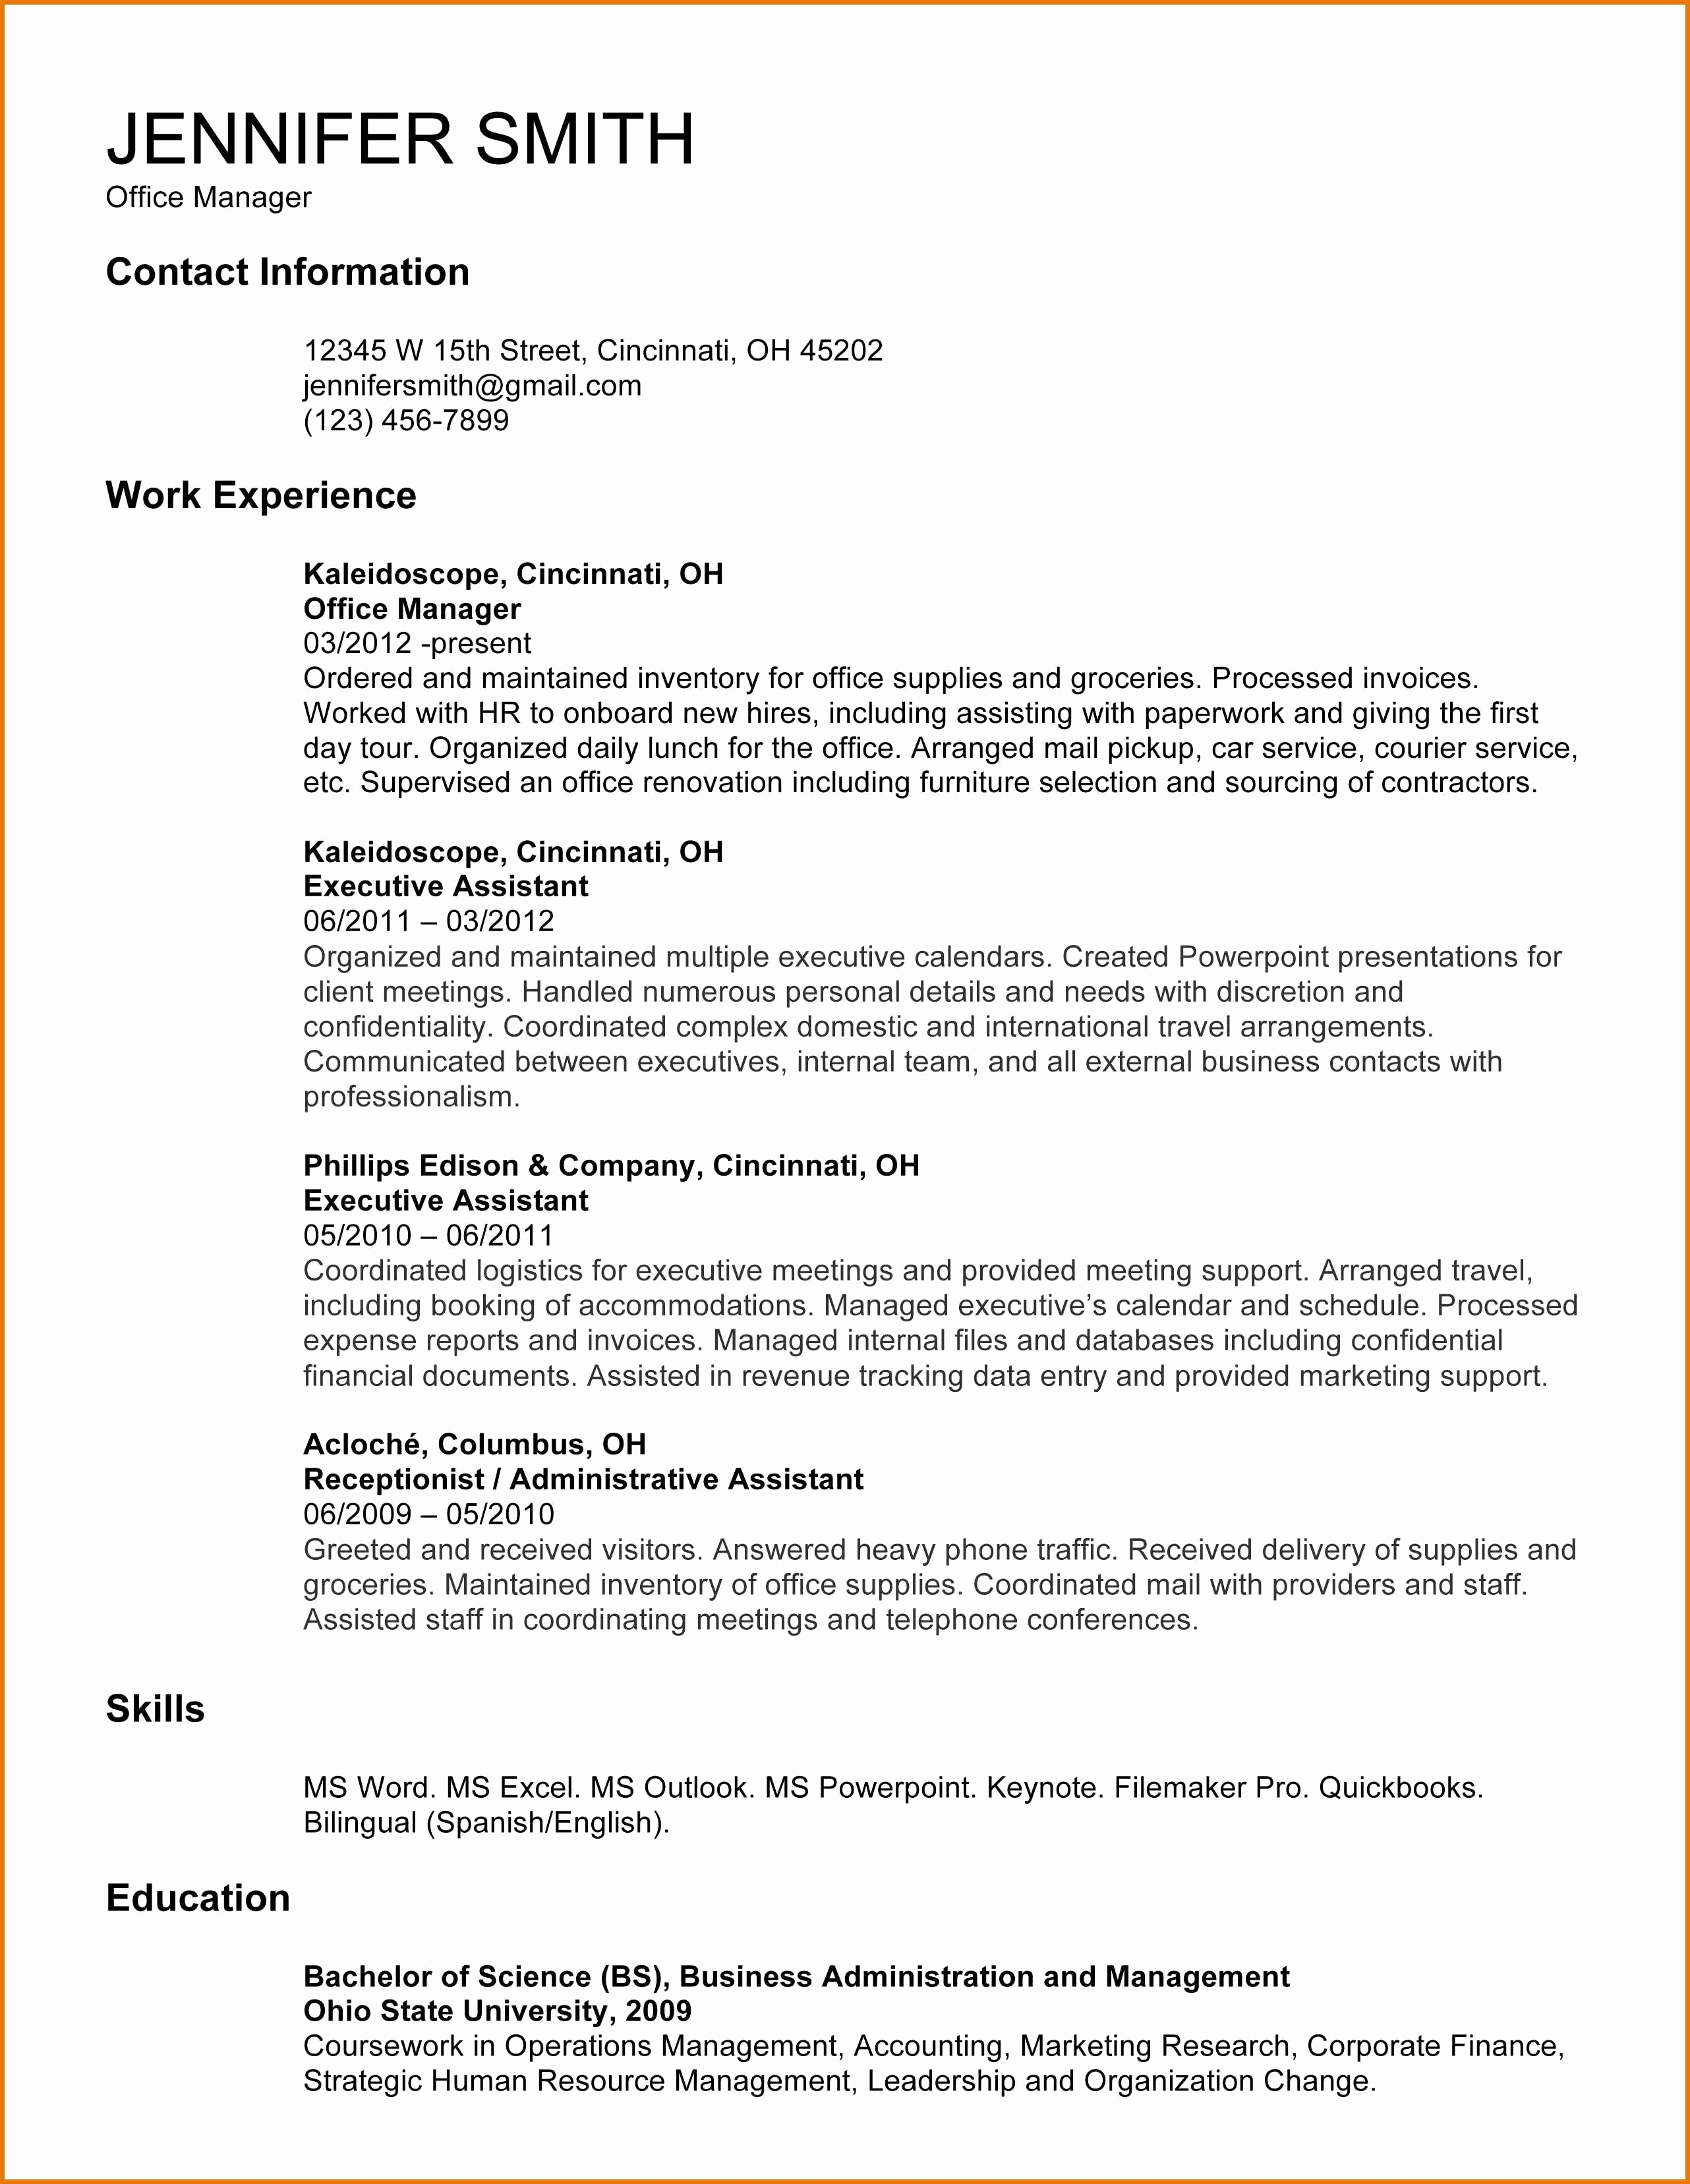 English Cover Letter Template - Best Resume and Cover Letter Template